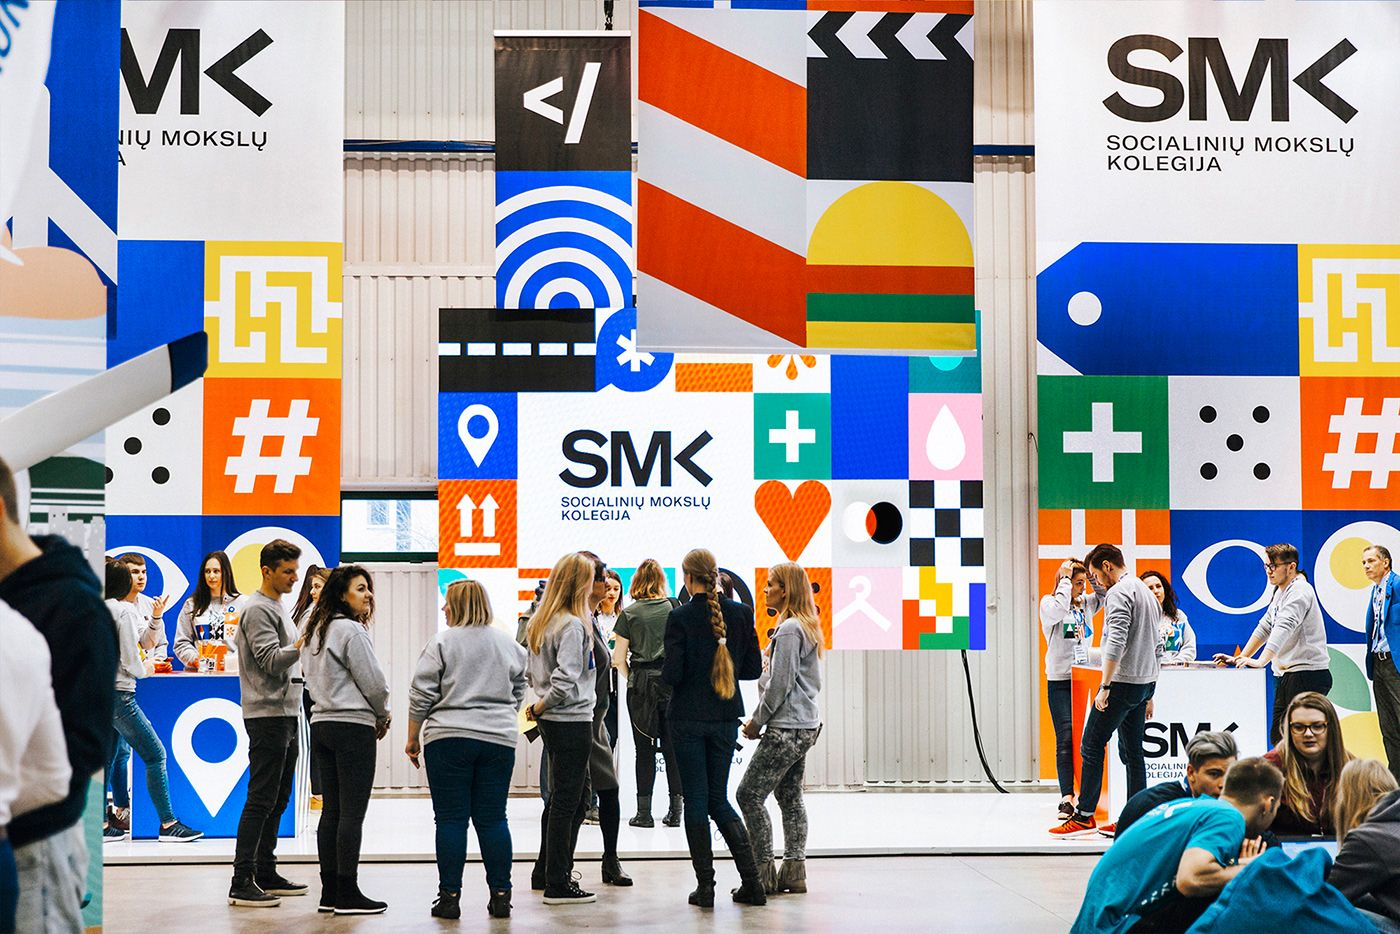 Smk University Of Applied Social Sciences On Behance With Images Social Science Conference Branding Visual Identity System